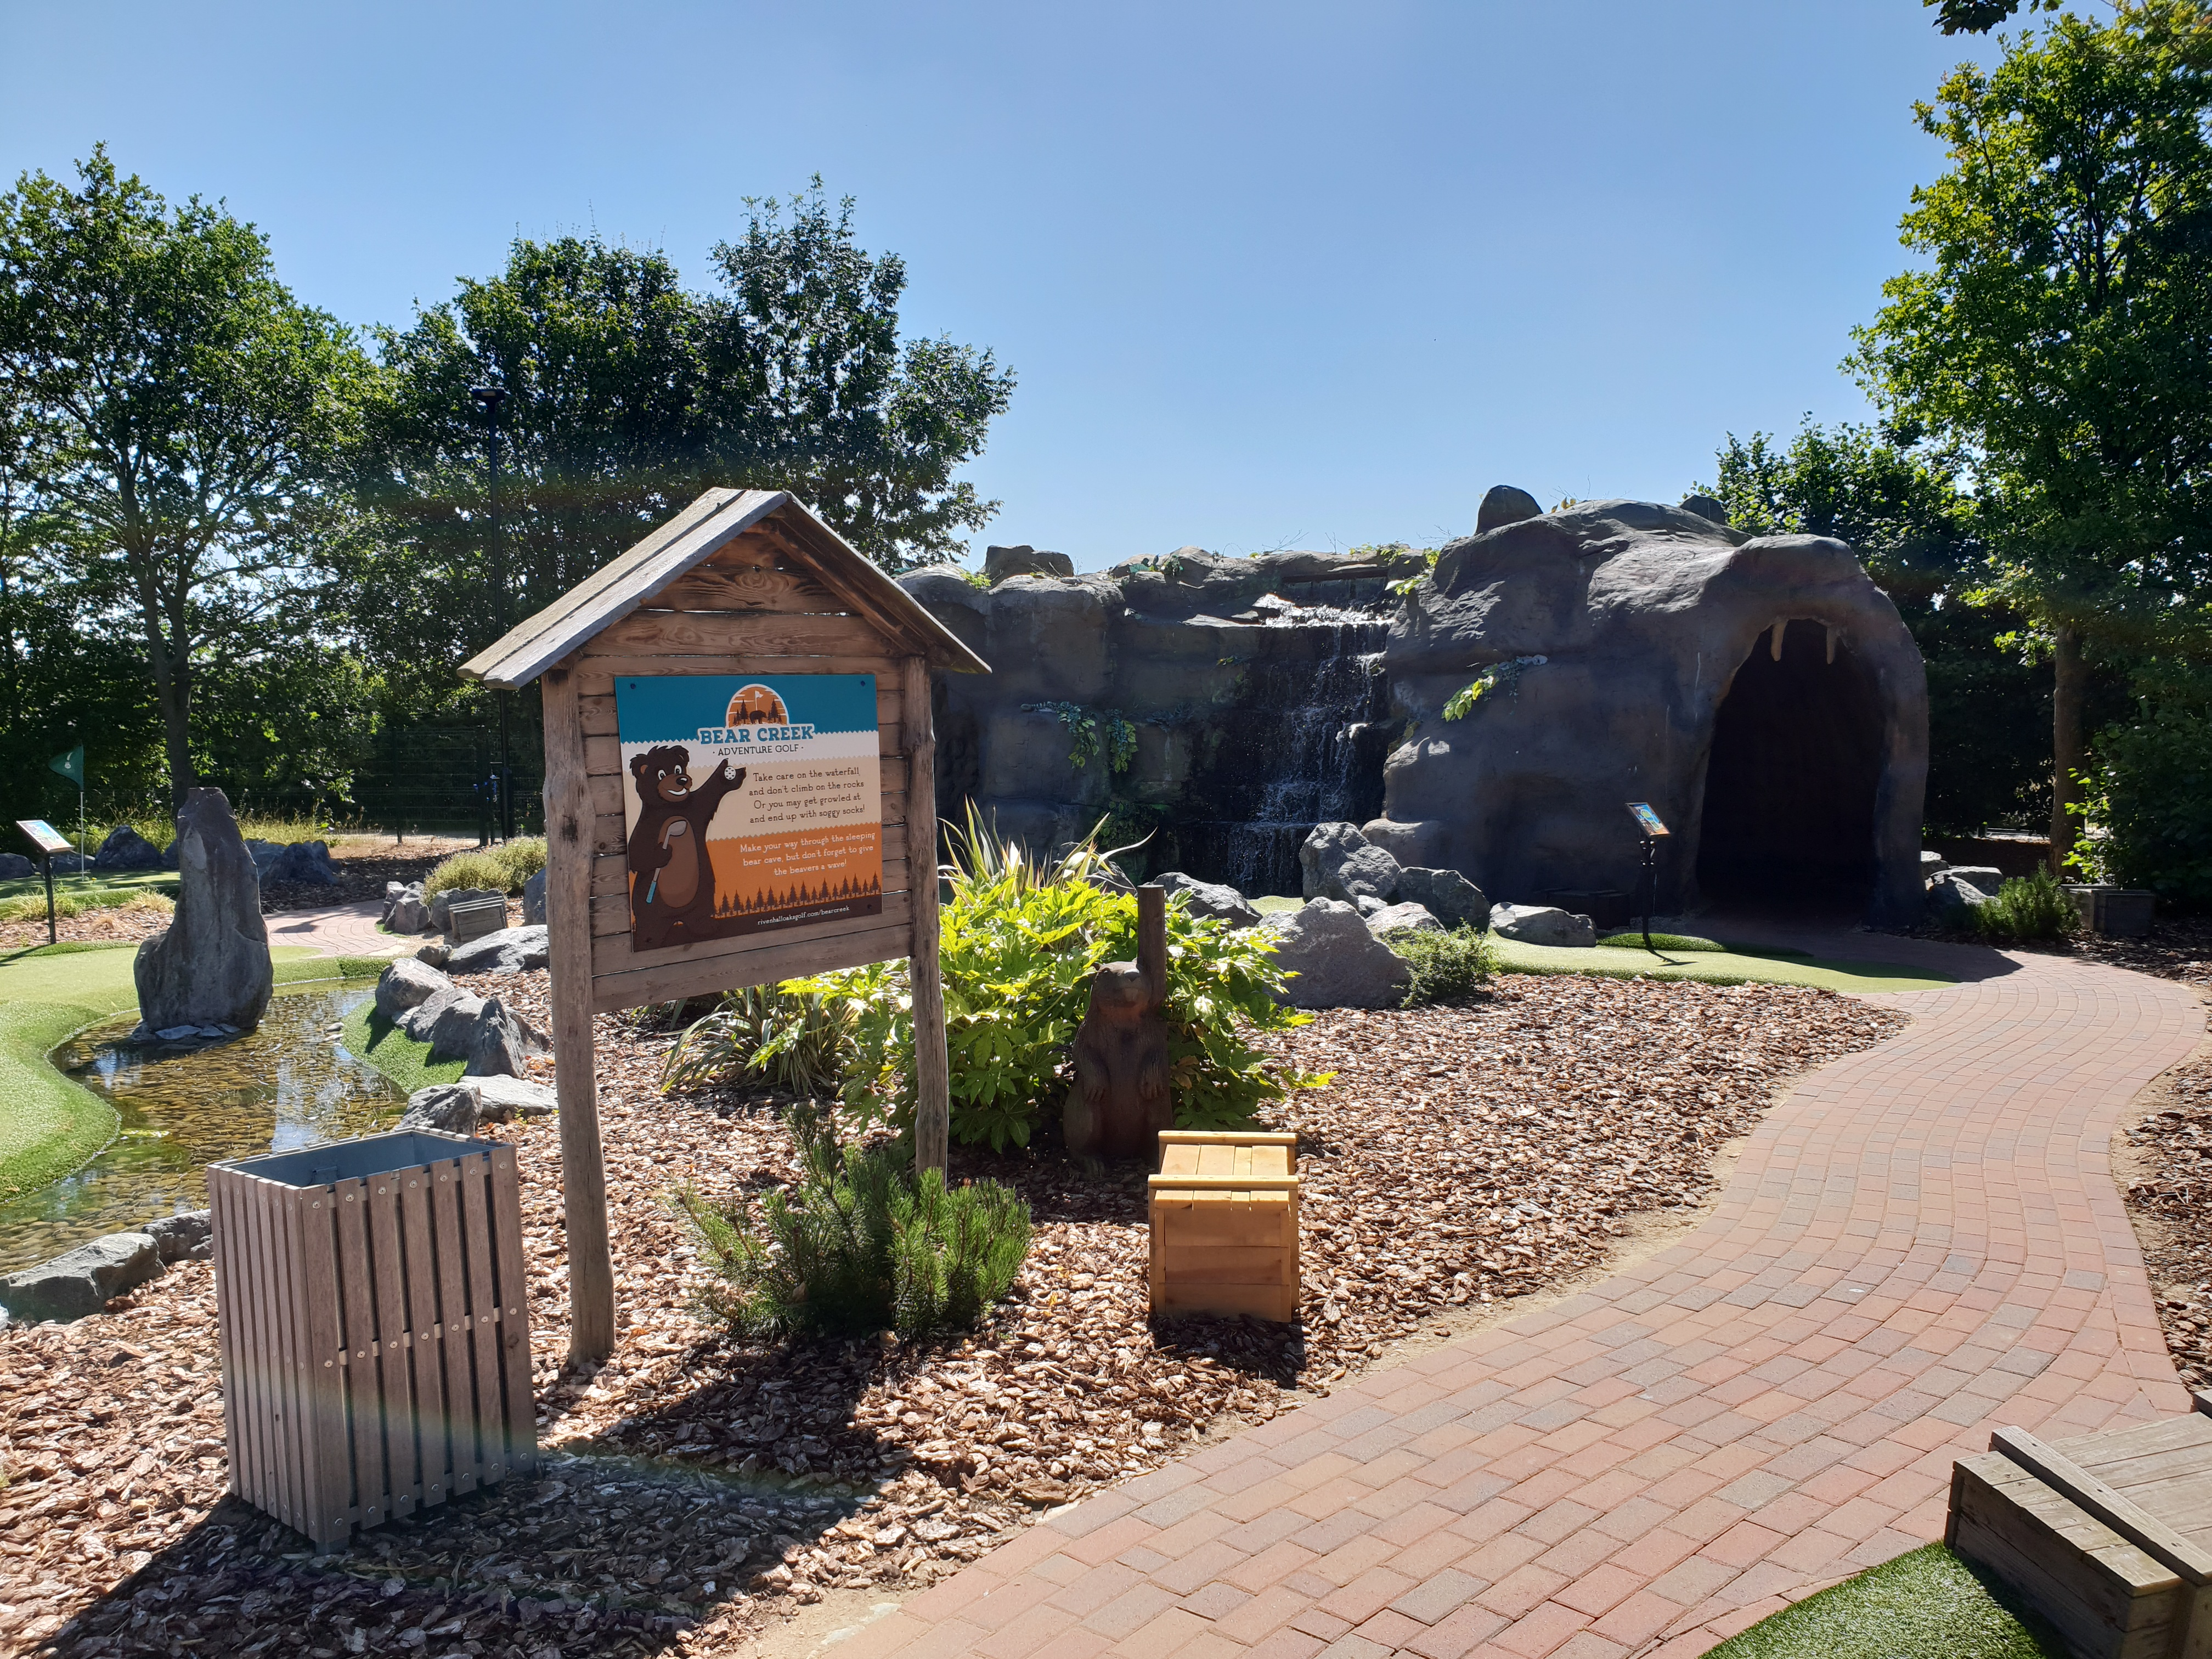 The bear shaped cave at Bear Creek Adventure Golf